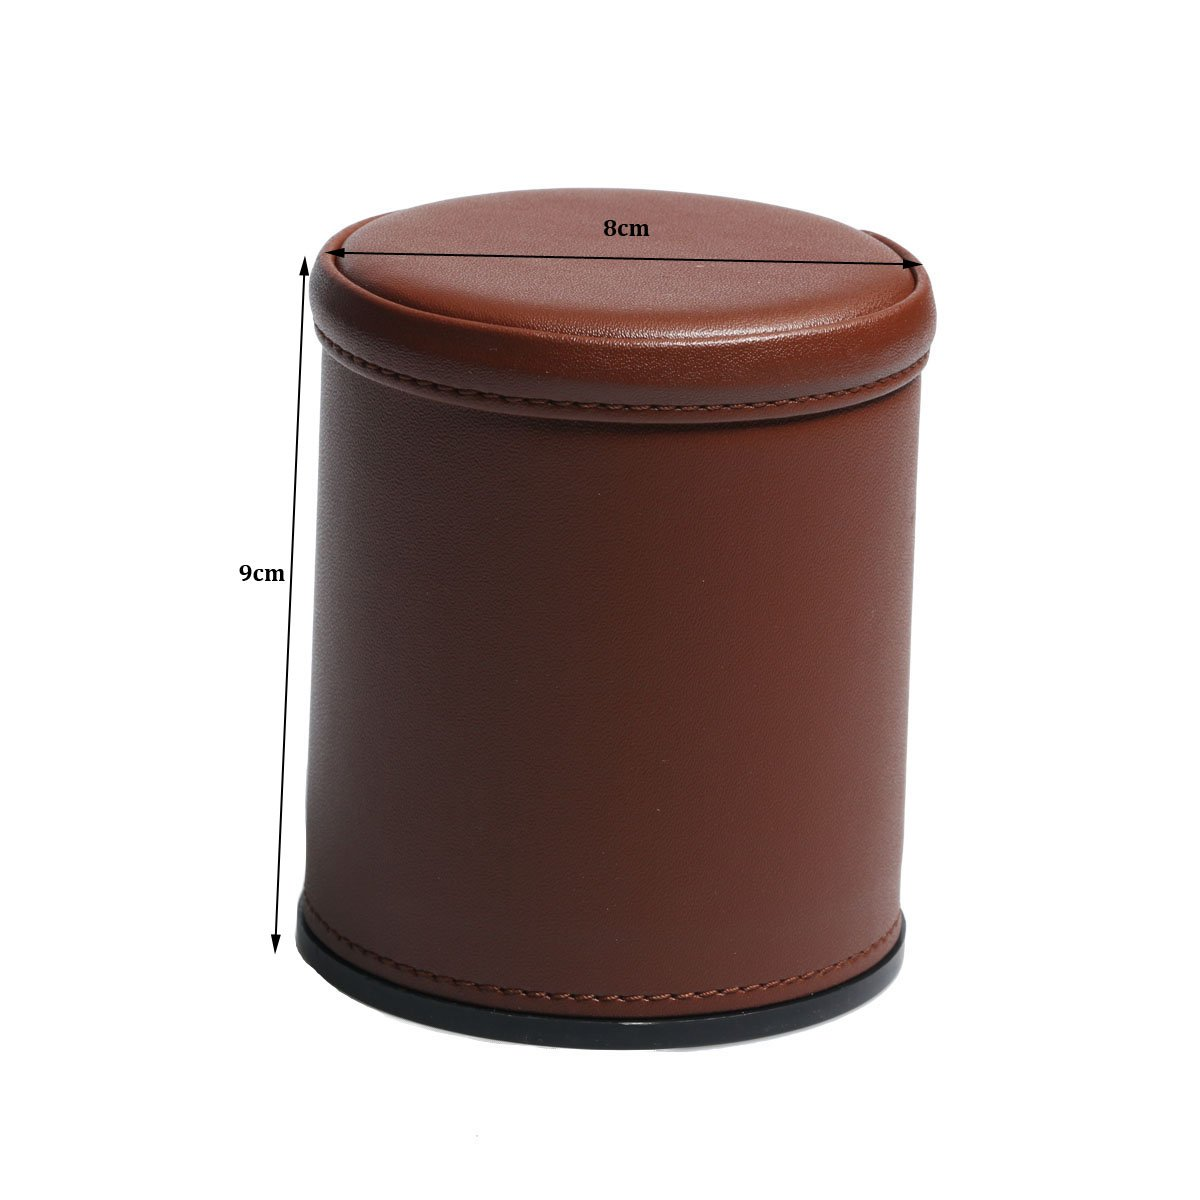 Brown Leather Dice Cup Set Felt Lining Quiet Shaker with 5 Dot Dices for Farkle Yahtzee Games,2 Pack RERIVER